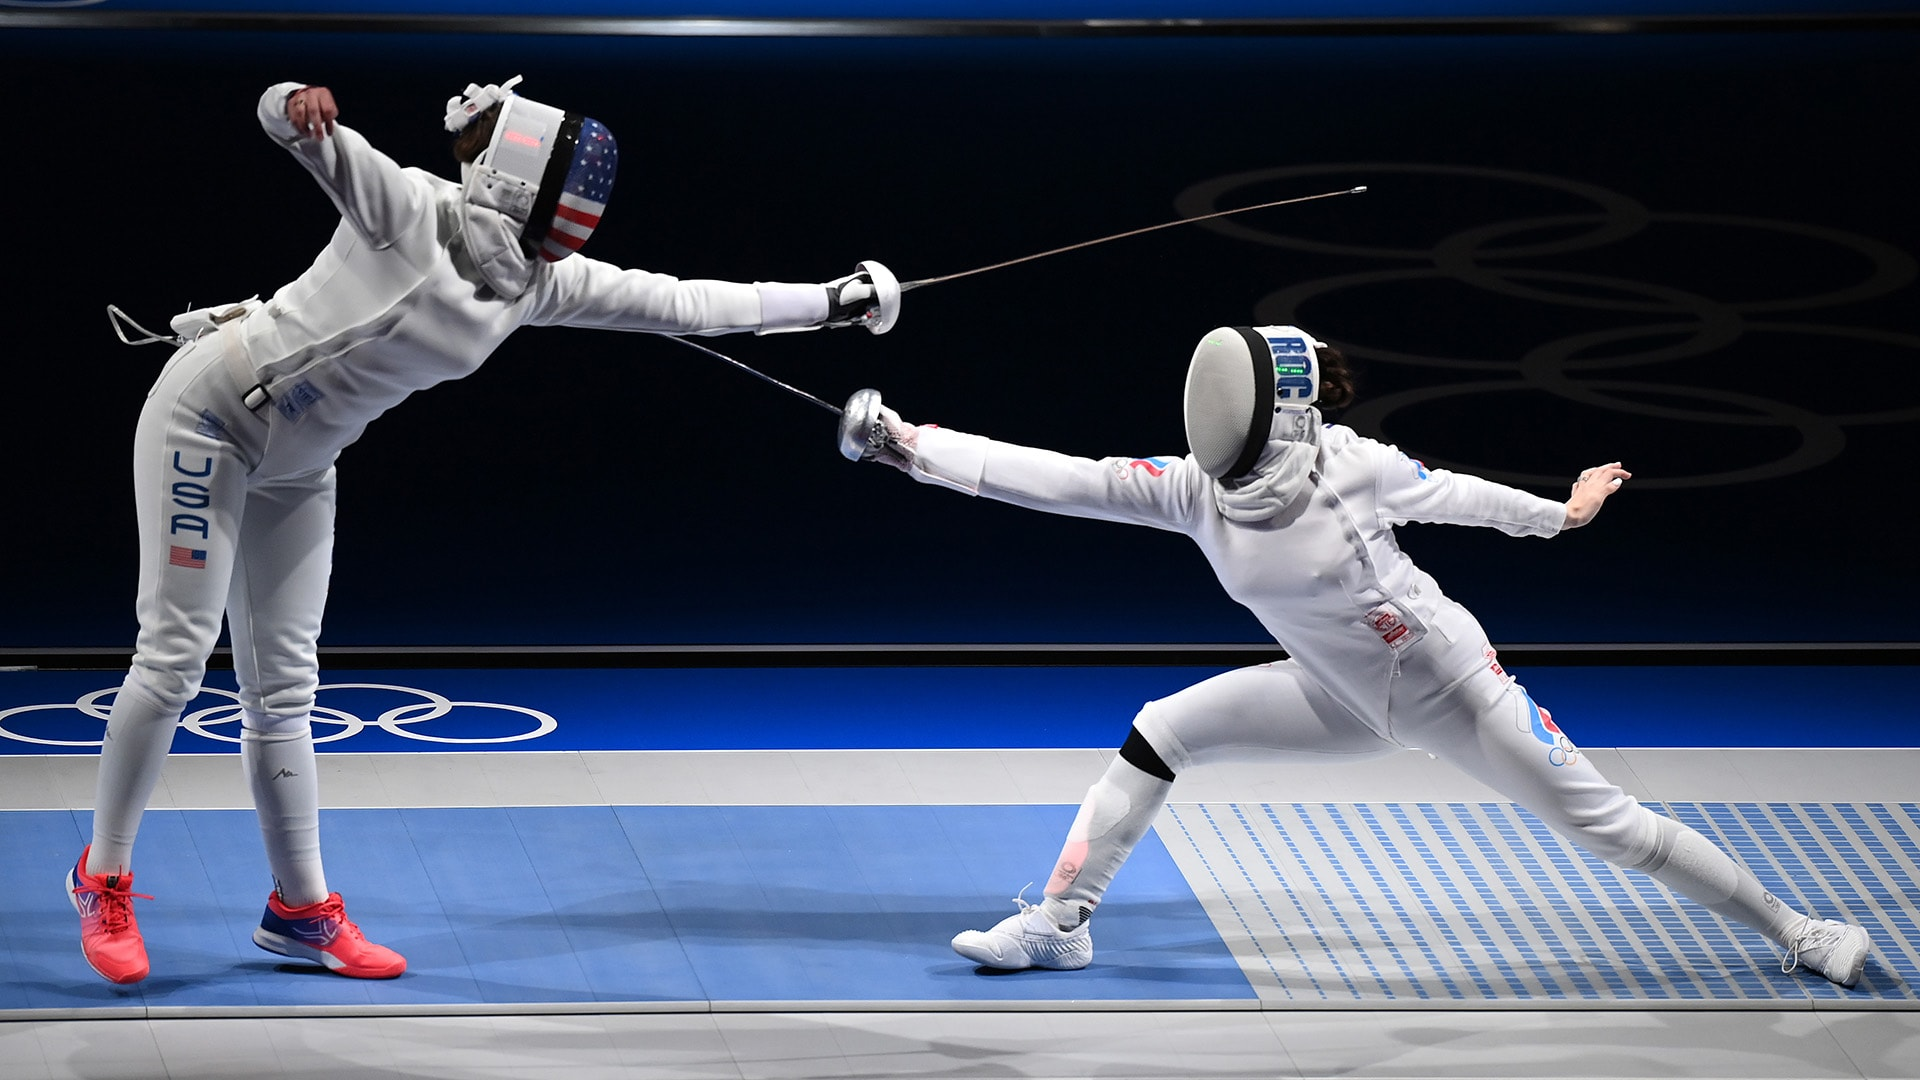 Kelley Hurley was defeated by Russian fencer Aizanat Murtazaeva in the women's individual epee...